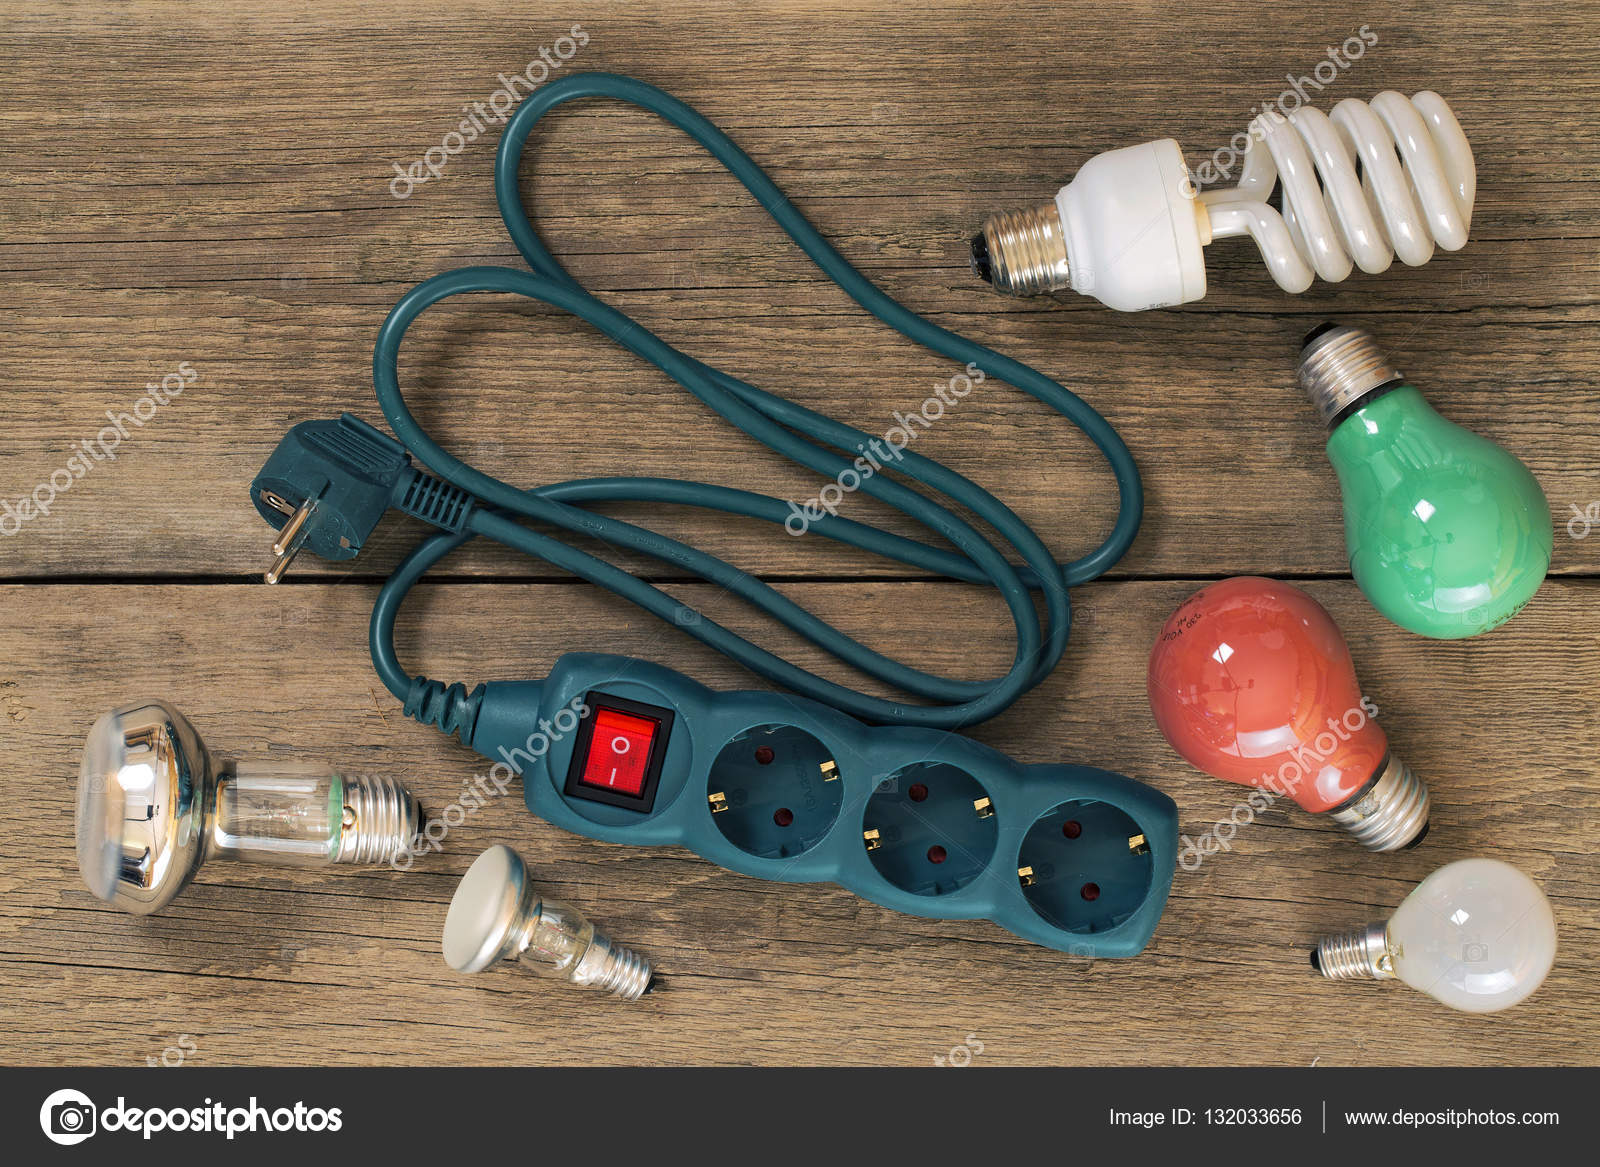 hight resolution of various lamps and multi outlet extension cord stock photo